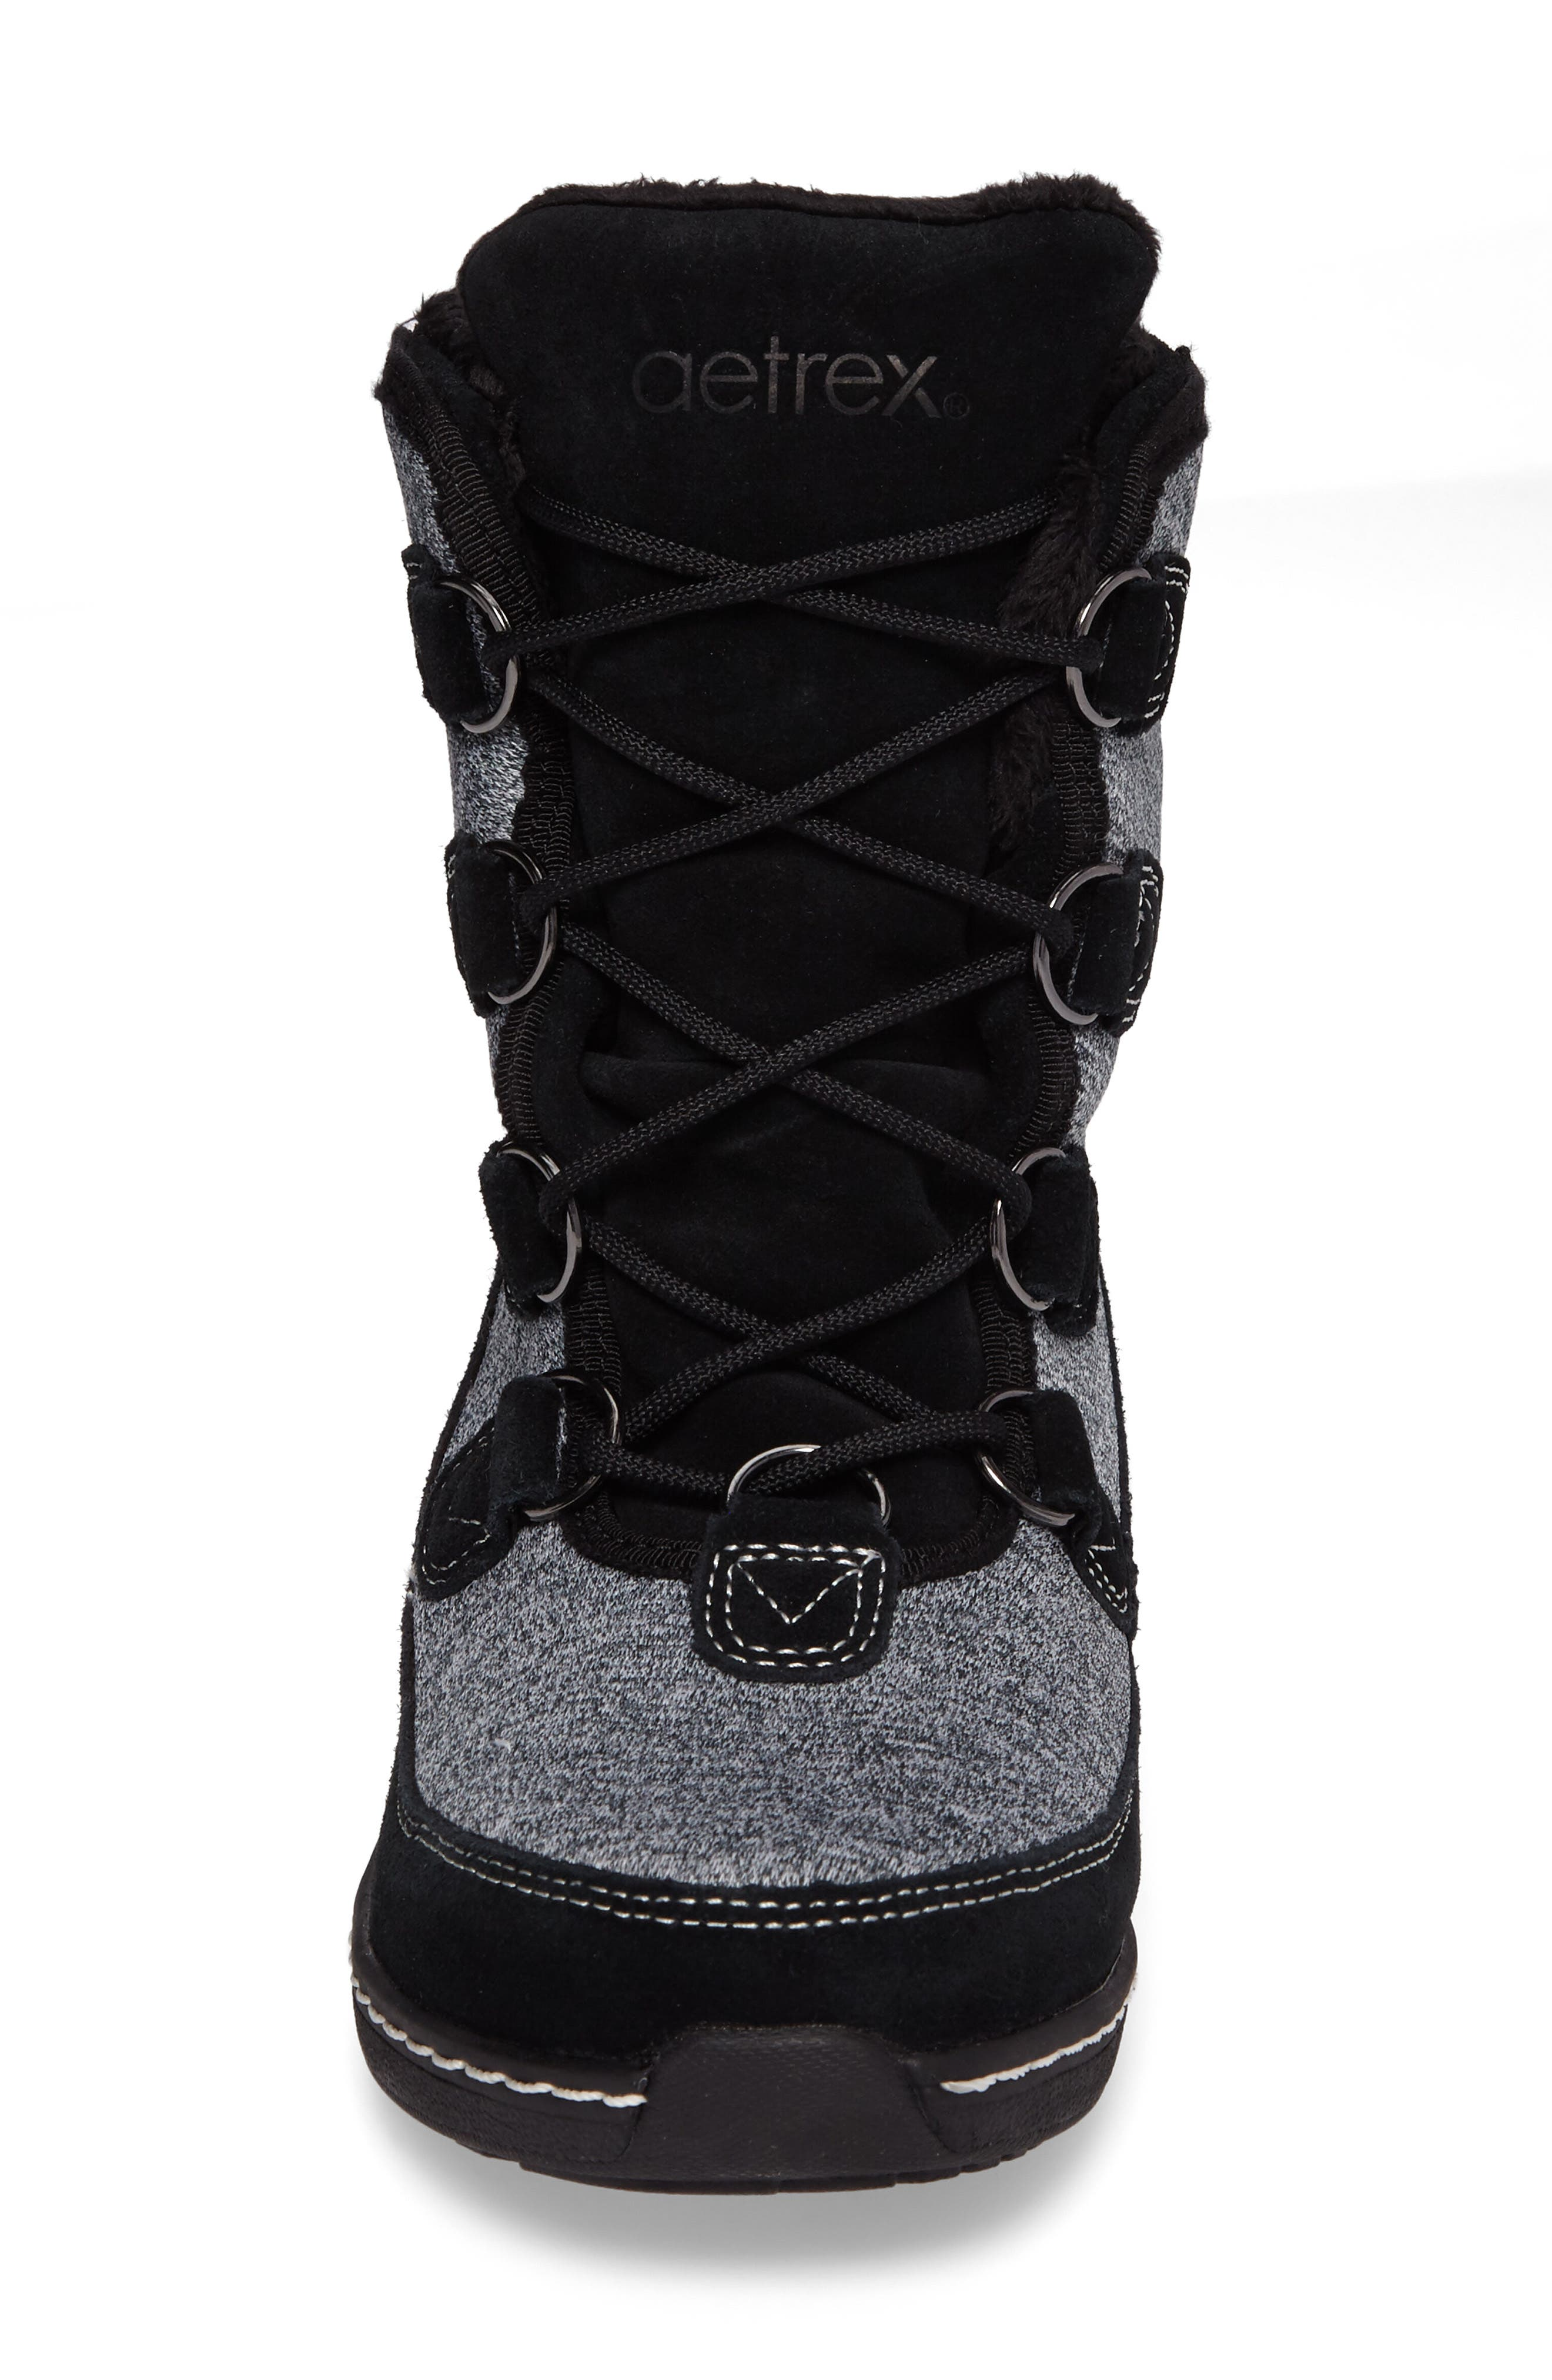 Berries Water Resistant Boot,                             Alternate thumbnail 4, color,                             MULTIBERRY SUEDE